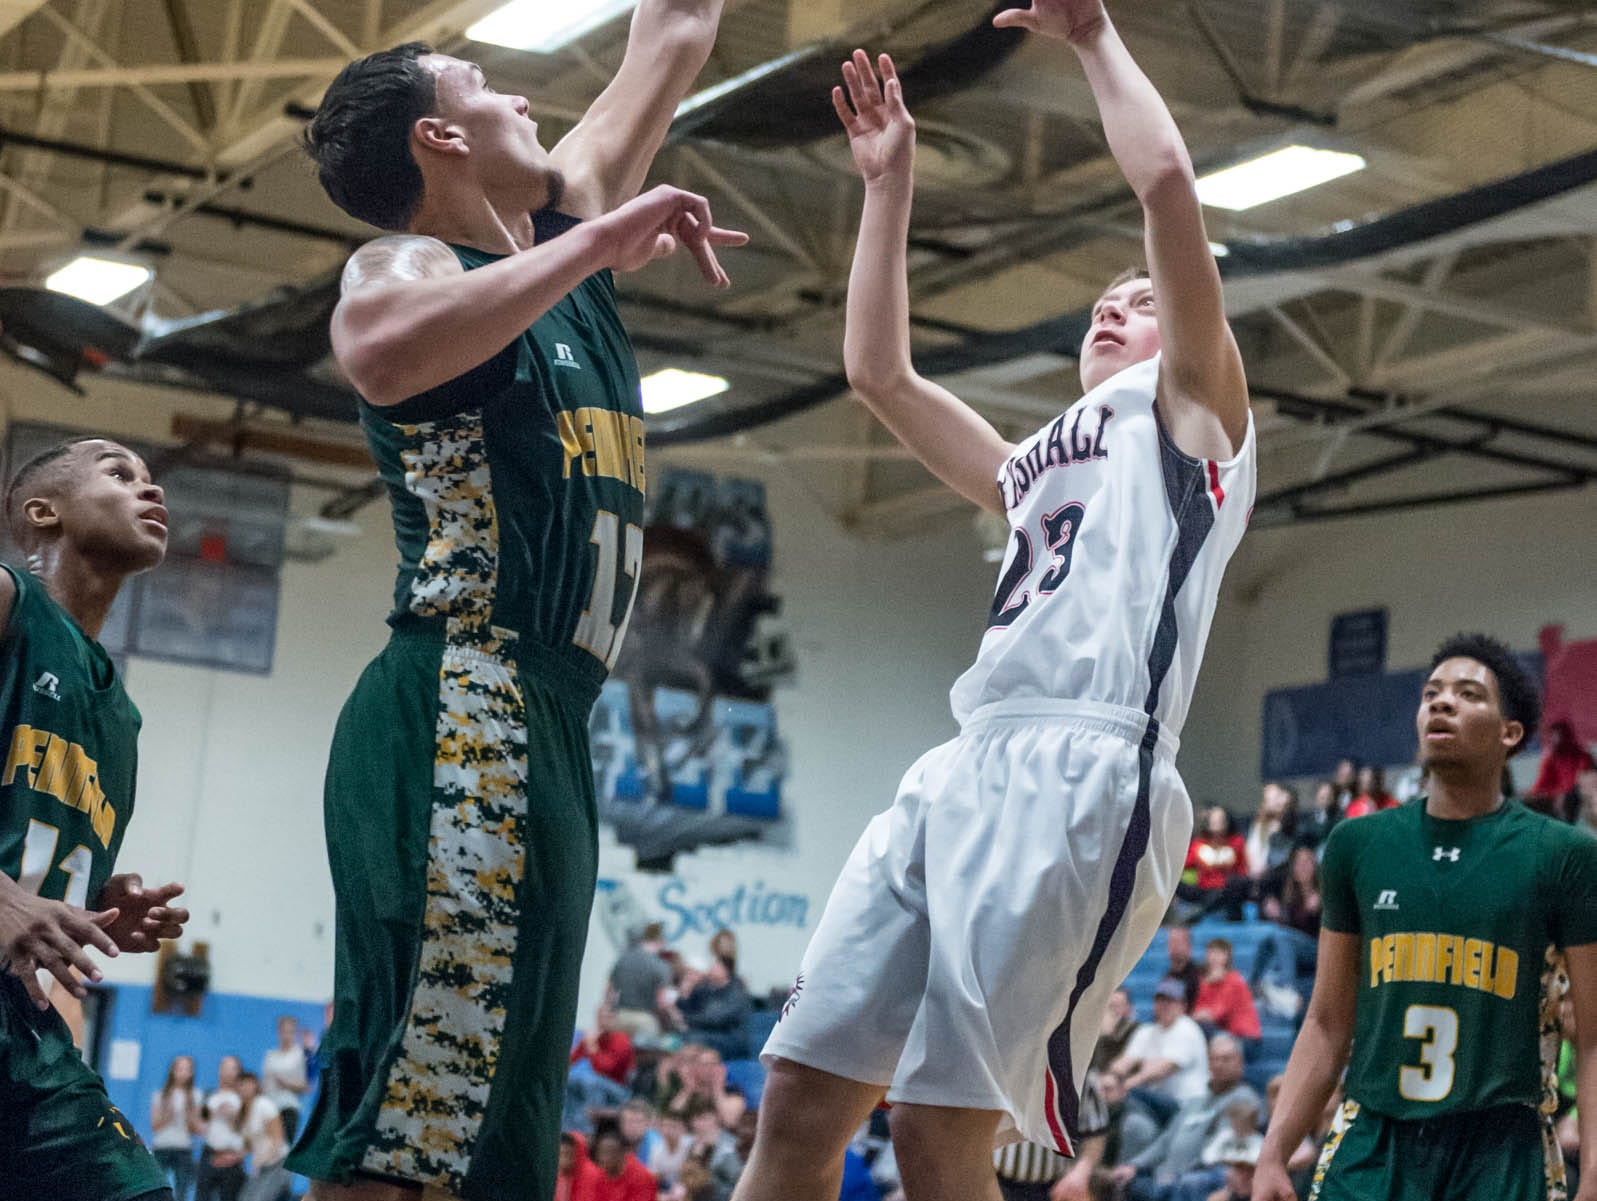 Pennfield's Steffen Kinne (12) goes for the shot block over Marshall's Cam Face (23) during Monday's district game.